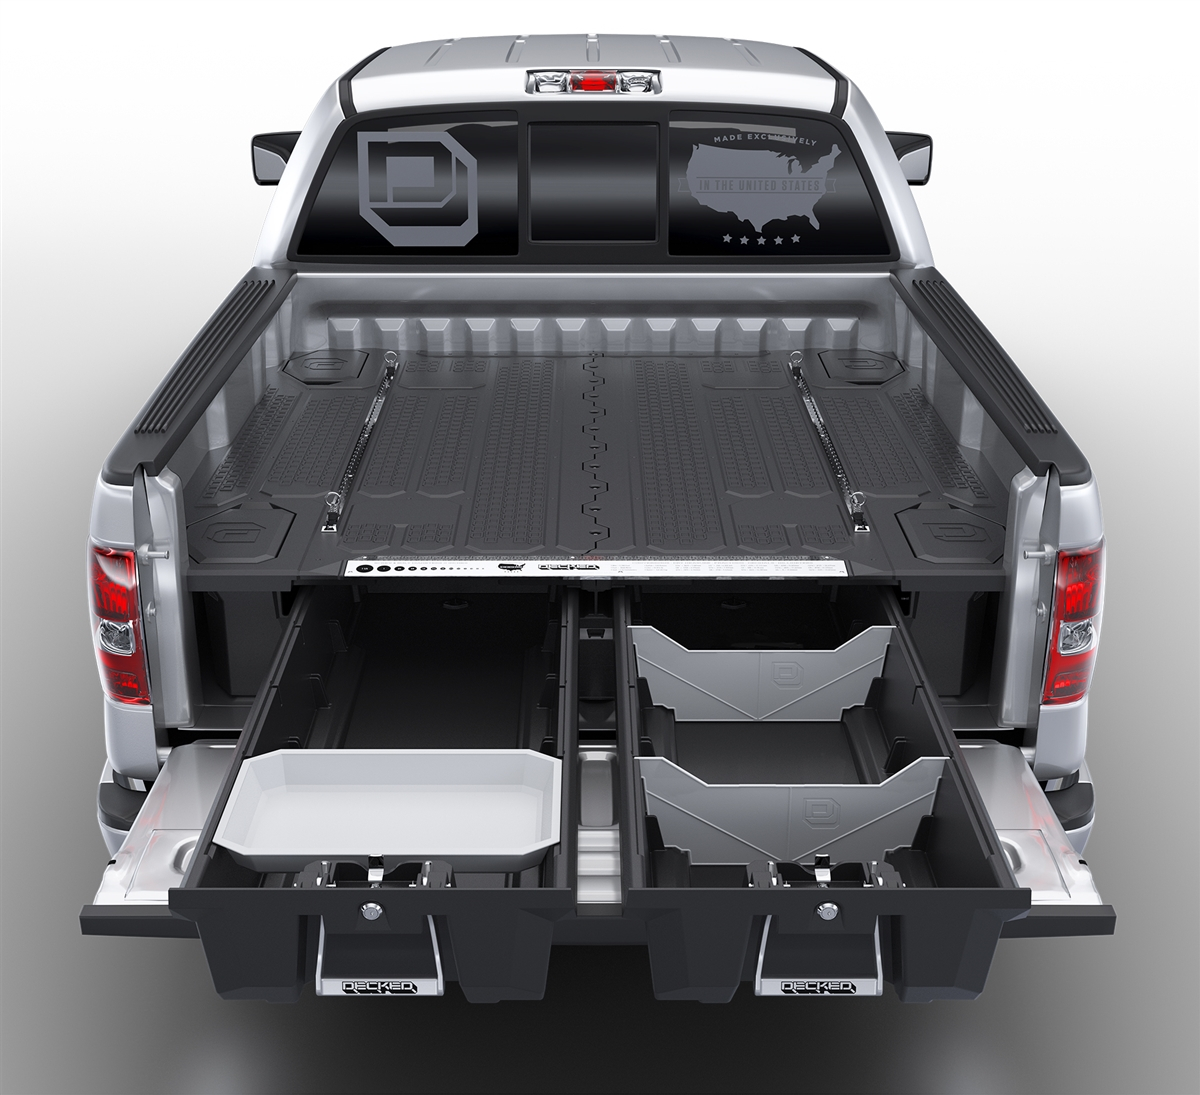 Image Result For Cargo Van Storage Drawers